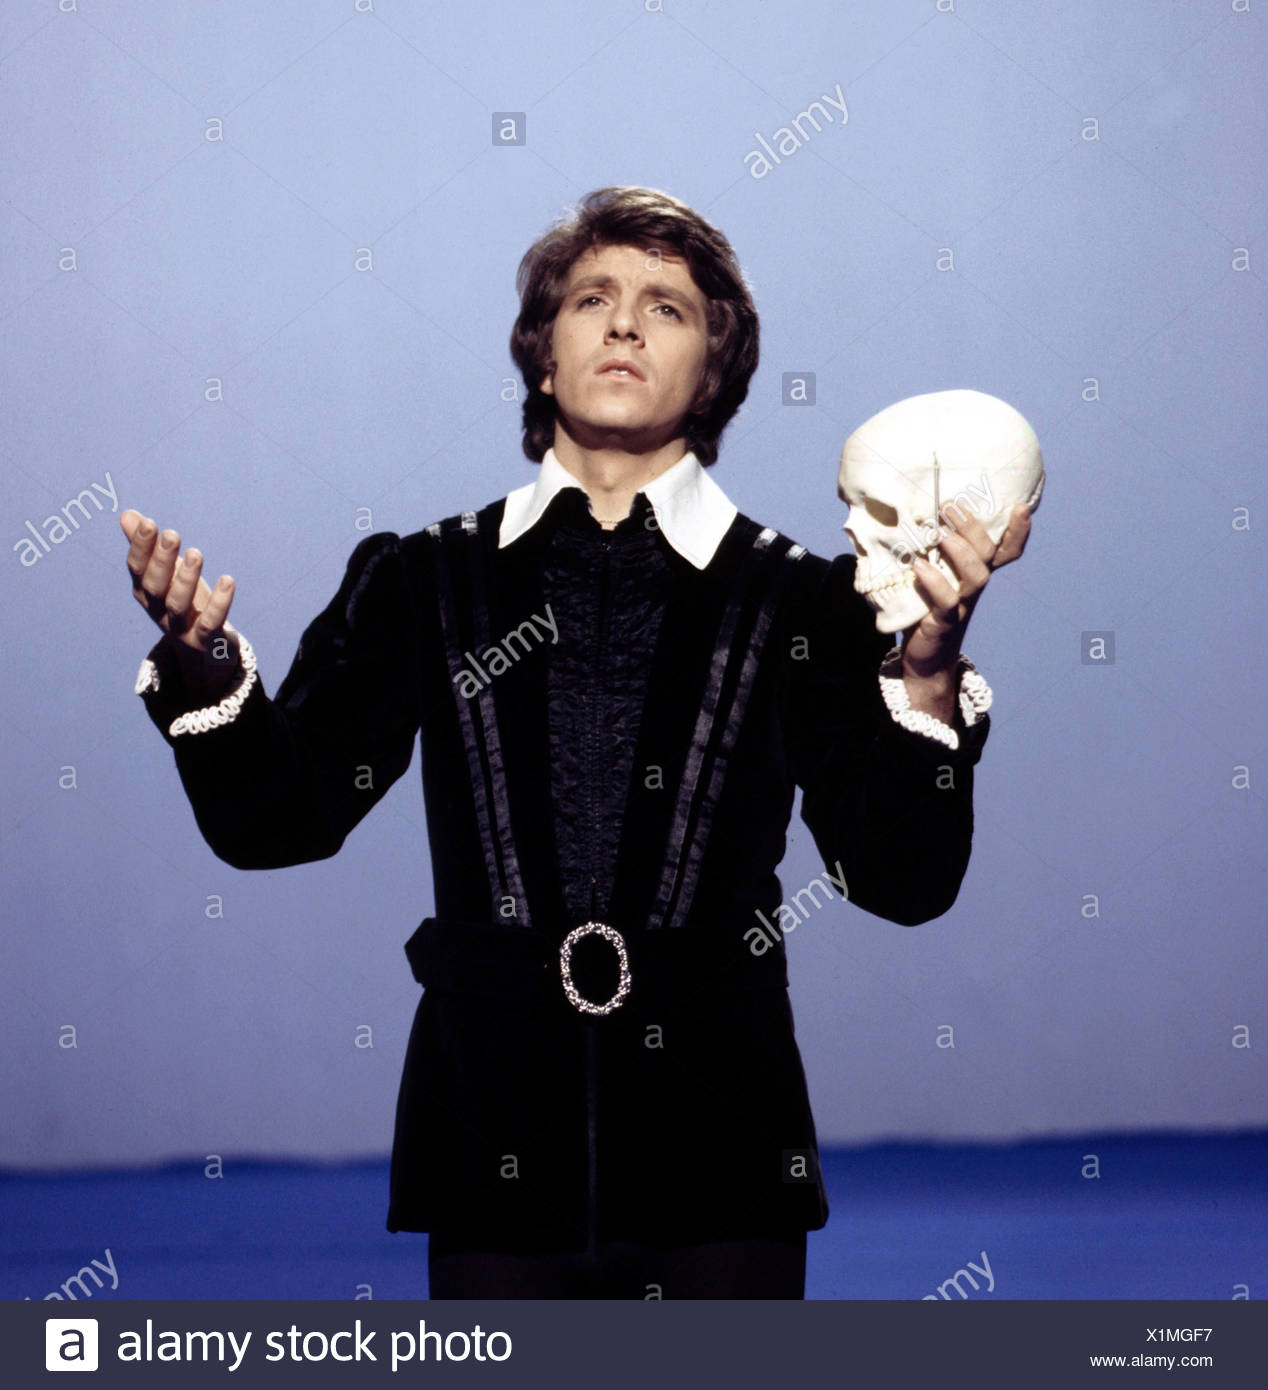 Schanze, Michael, * 15.1.1947, German moderator and singer, half length, dressed up as Hamlet, 1970s, Additional-Rights-Clearances-NA - Stock Image